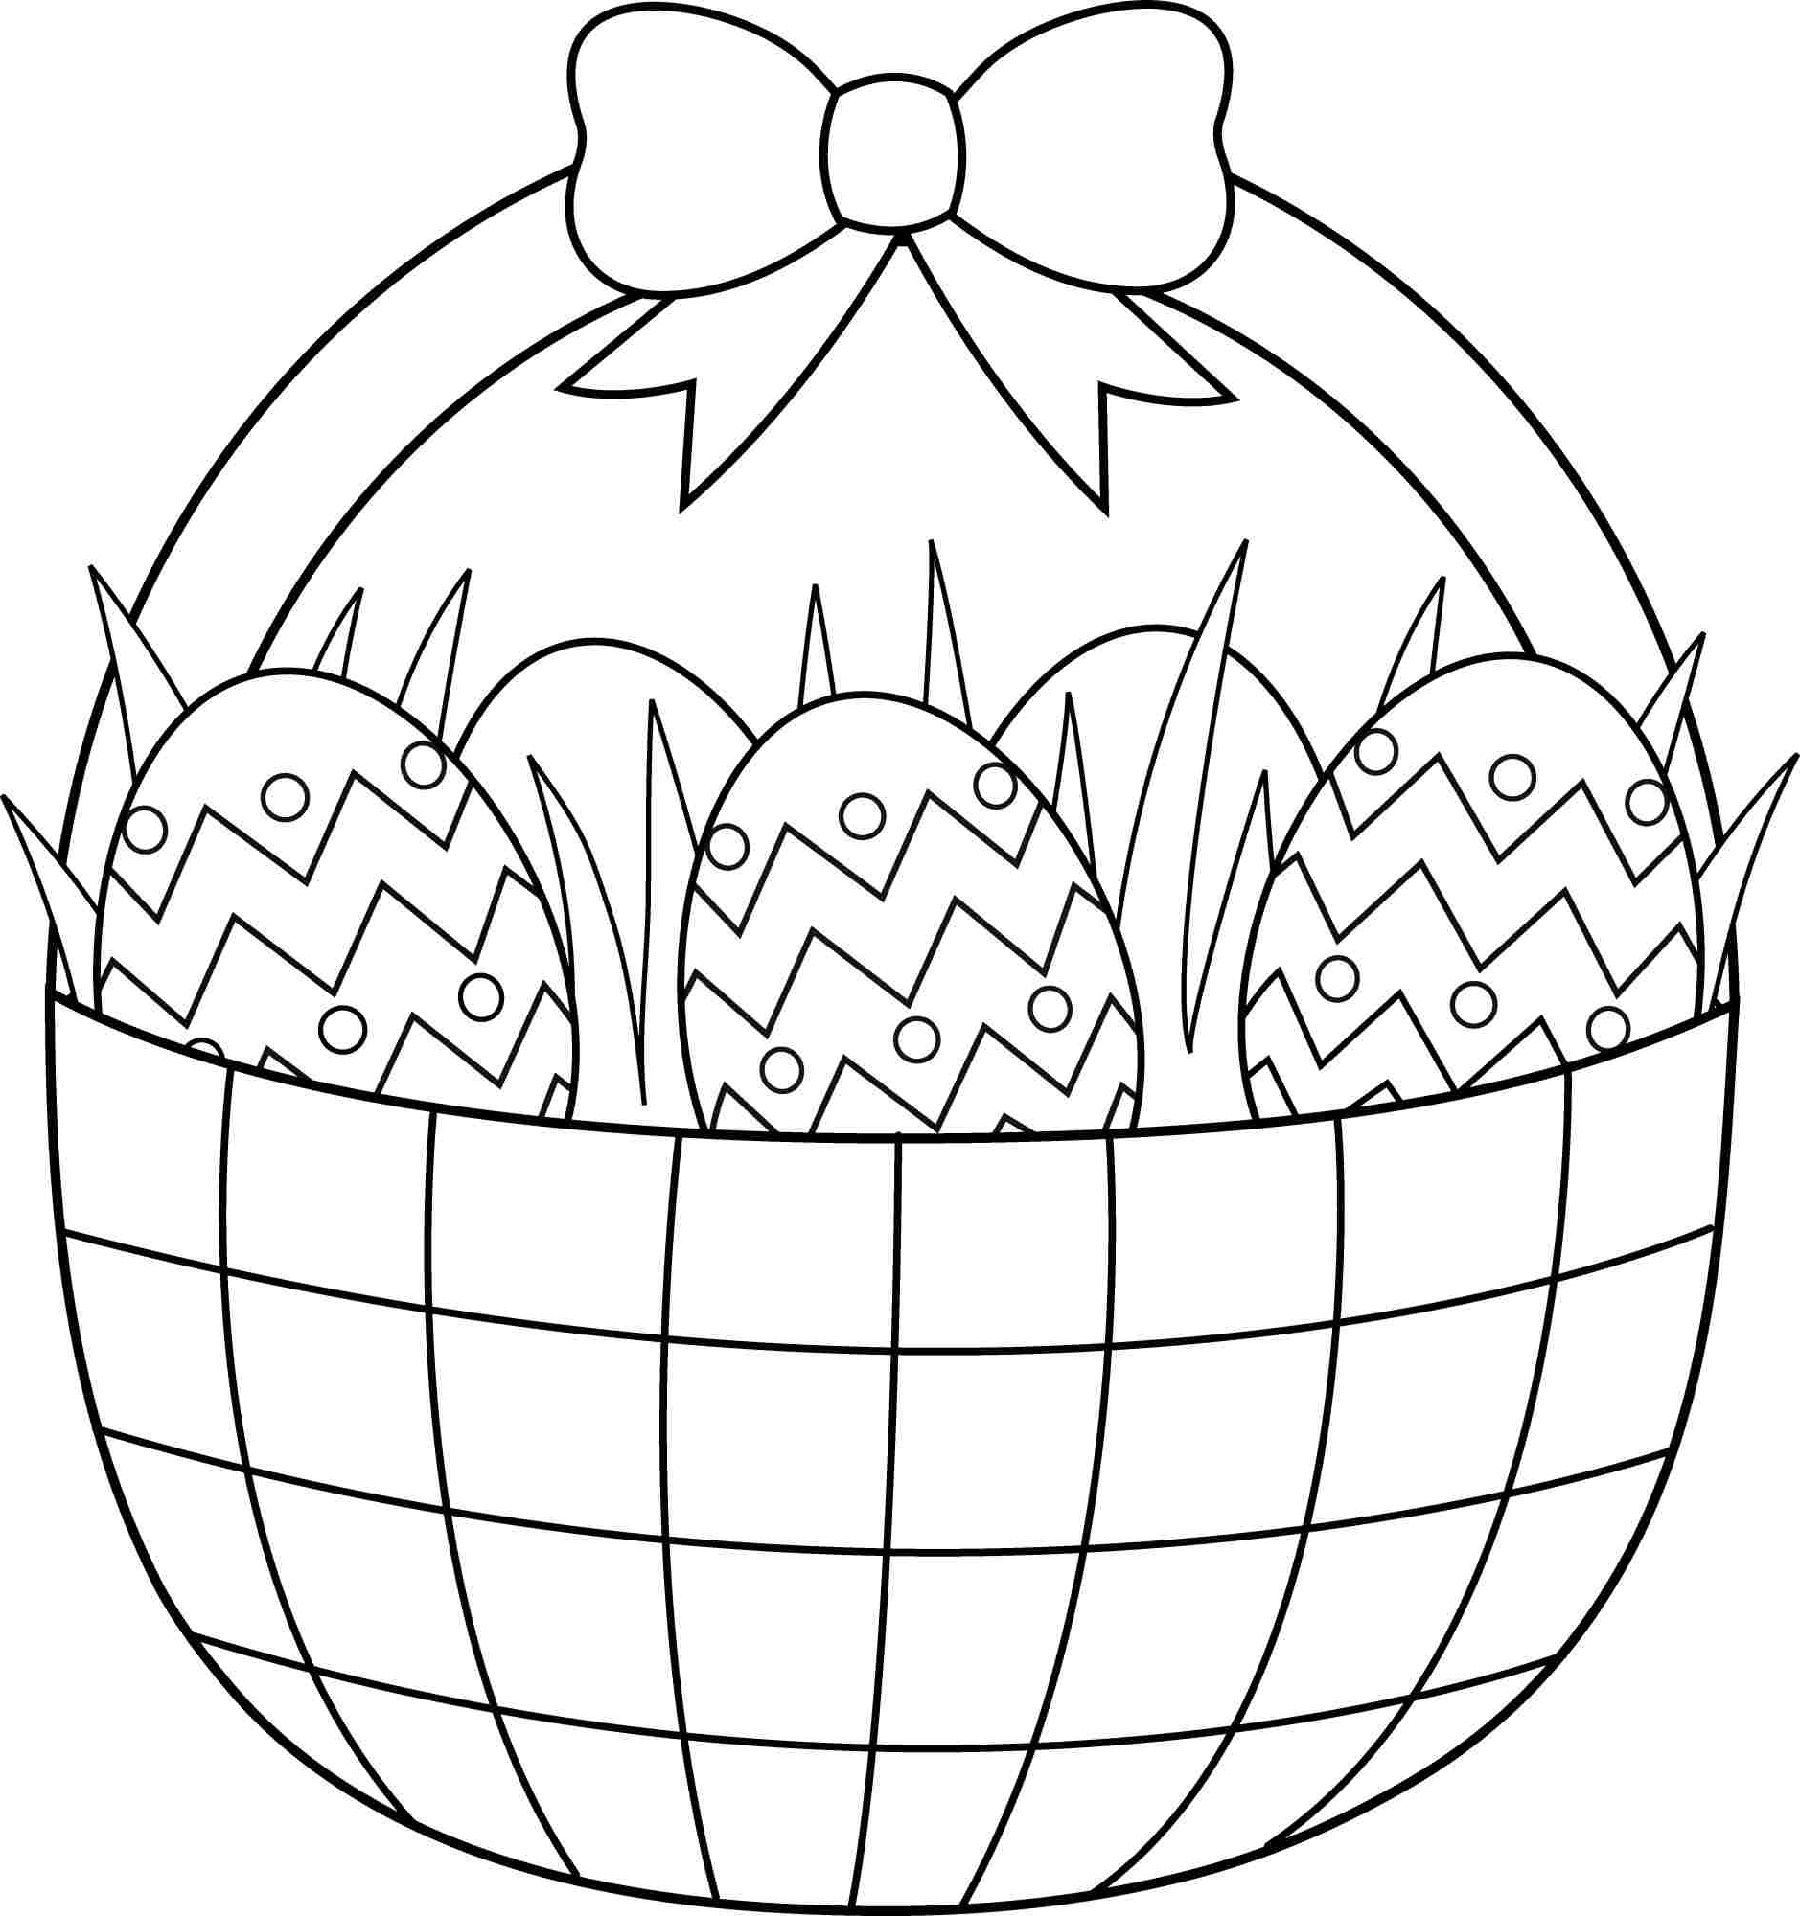 Printable Easter Eggs Basket Coloring Pages